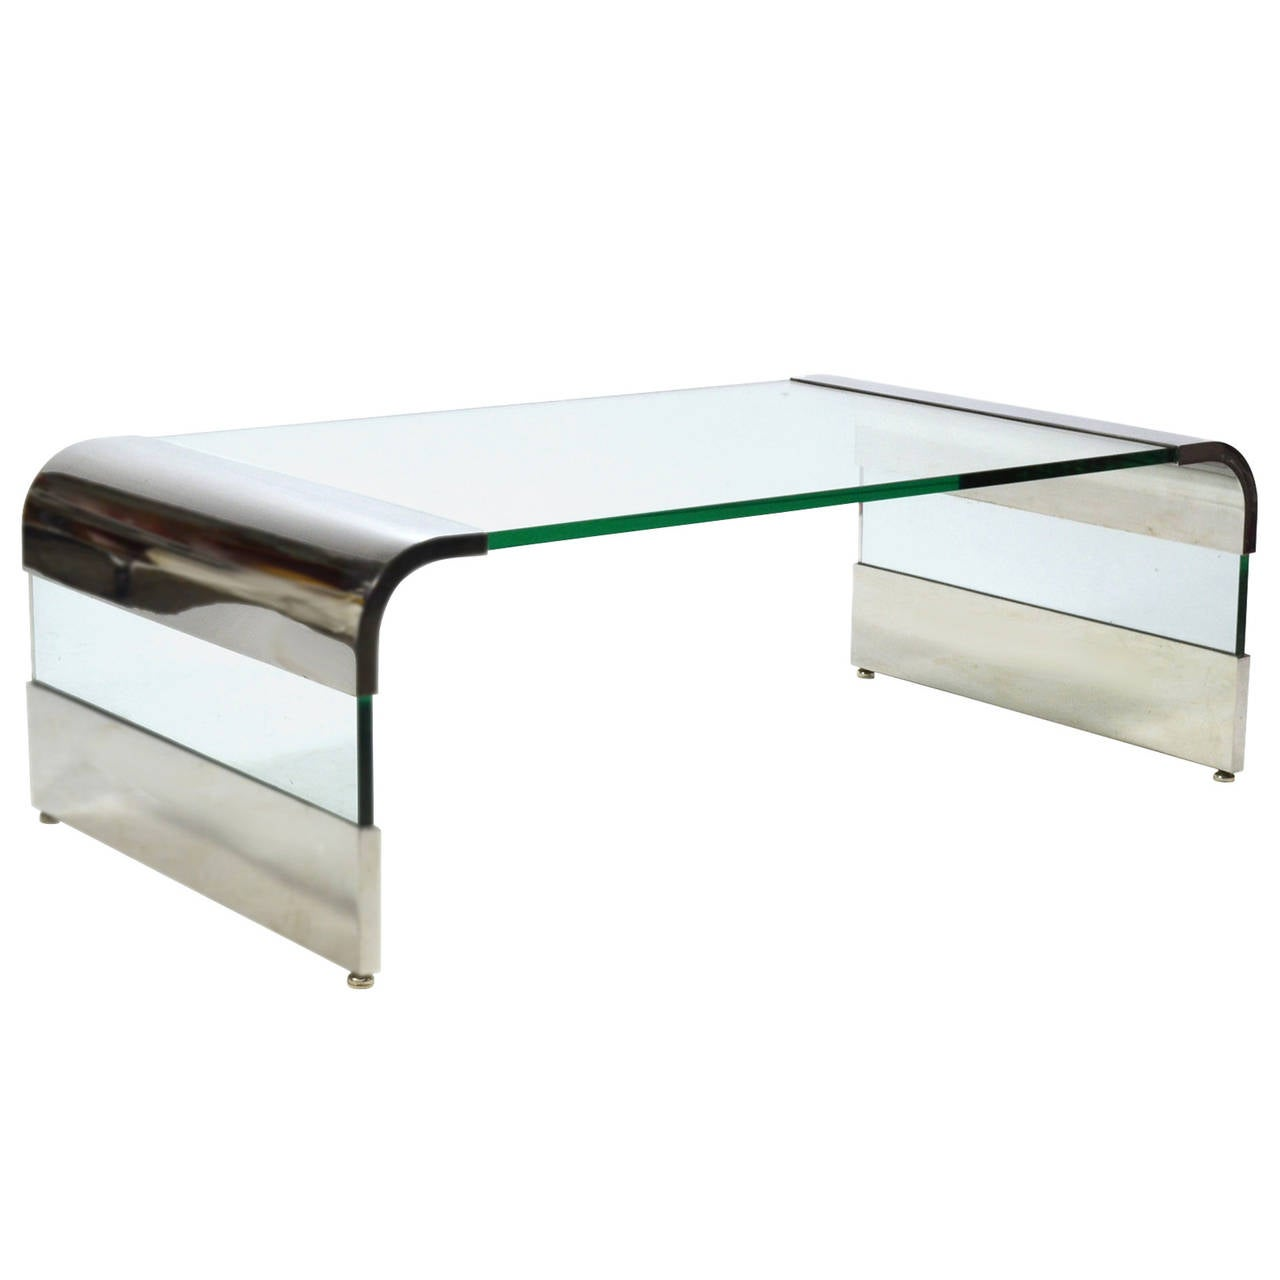 Leon Rosen Chrome And Glass Waterfall Coffee Table By Pace